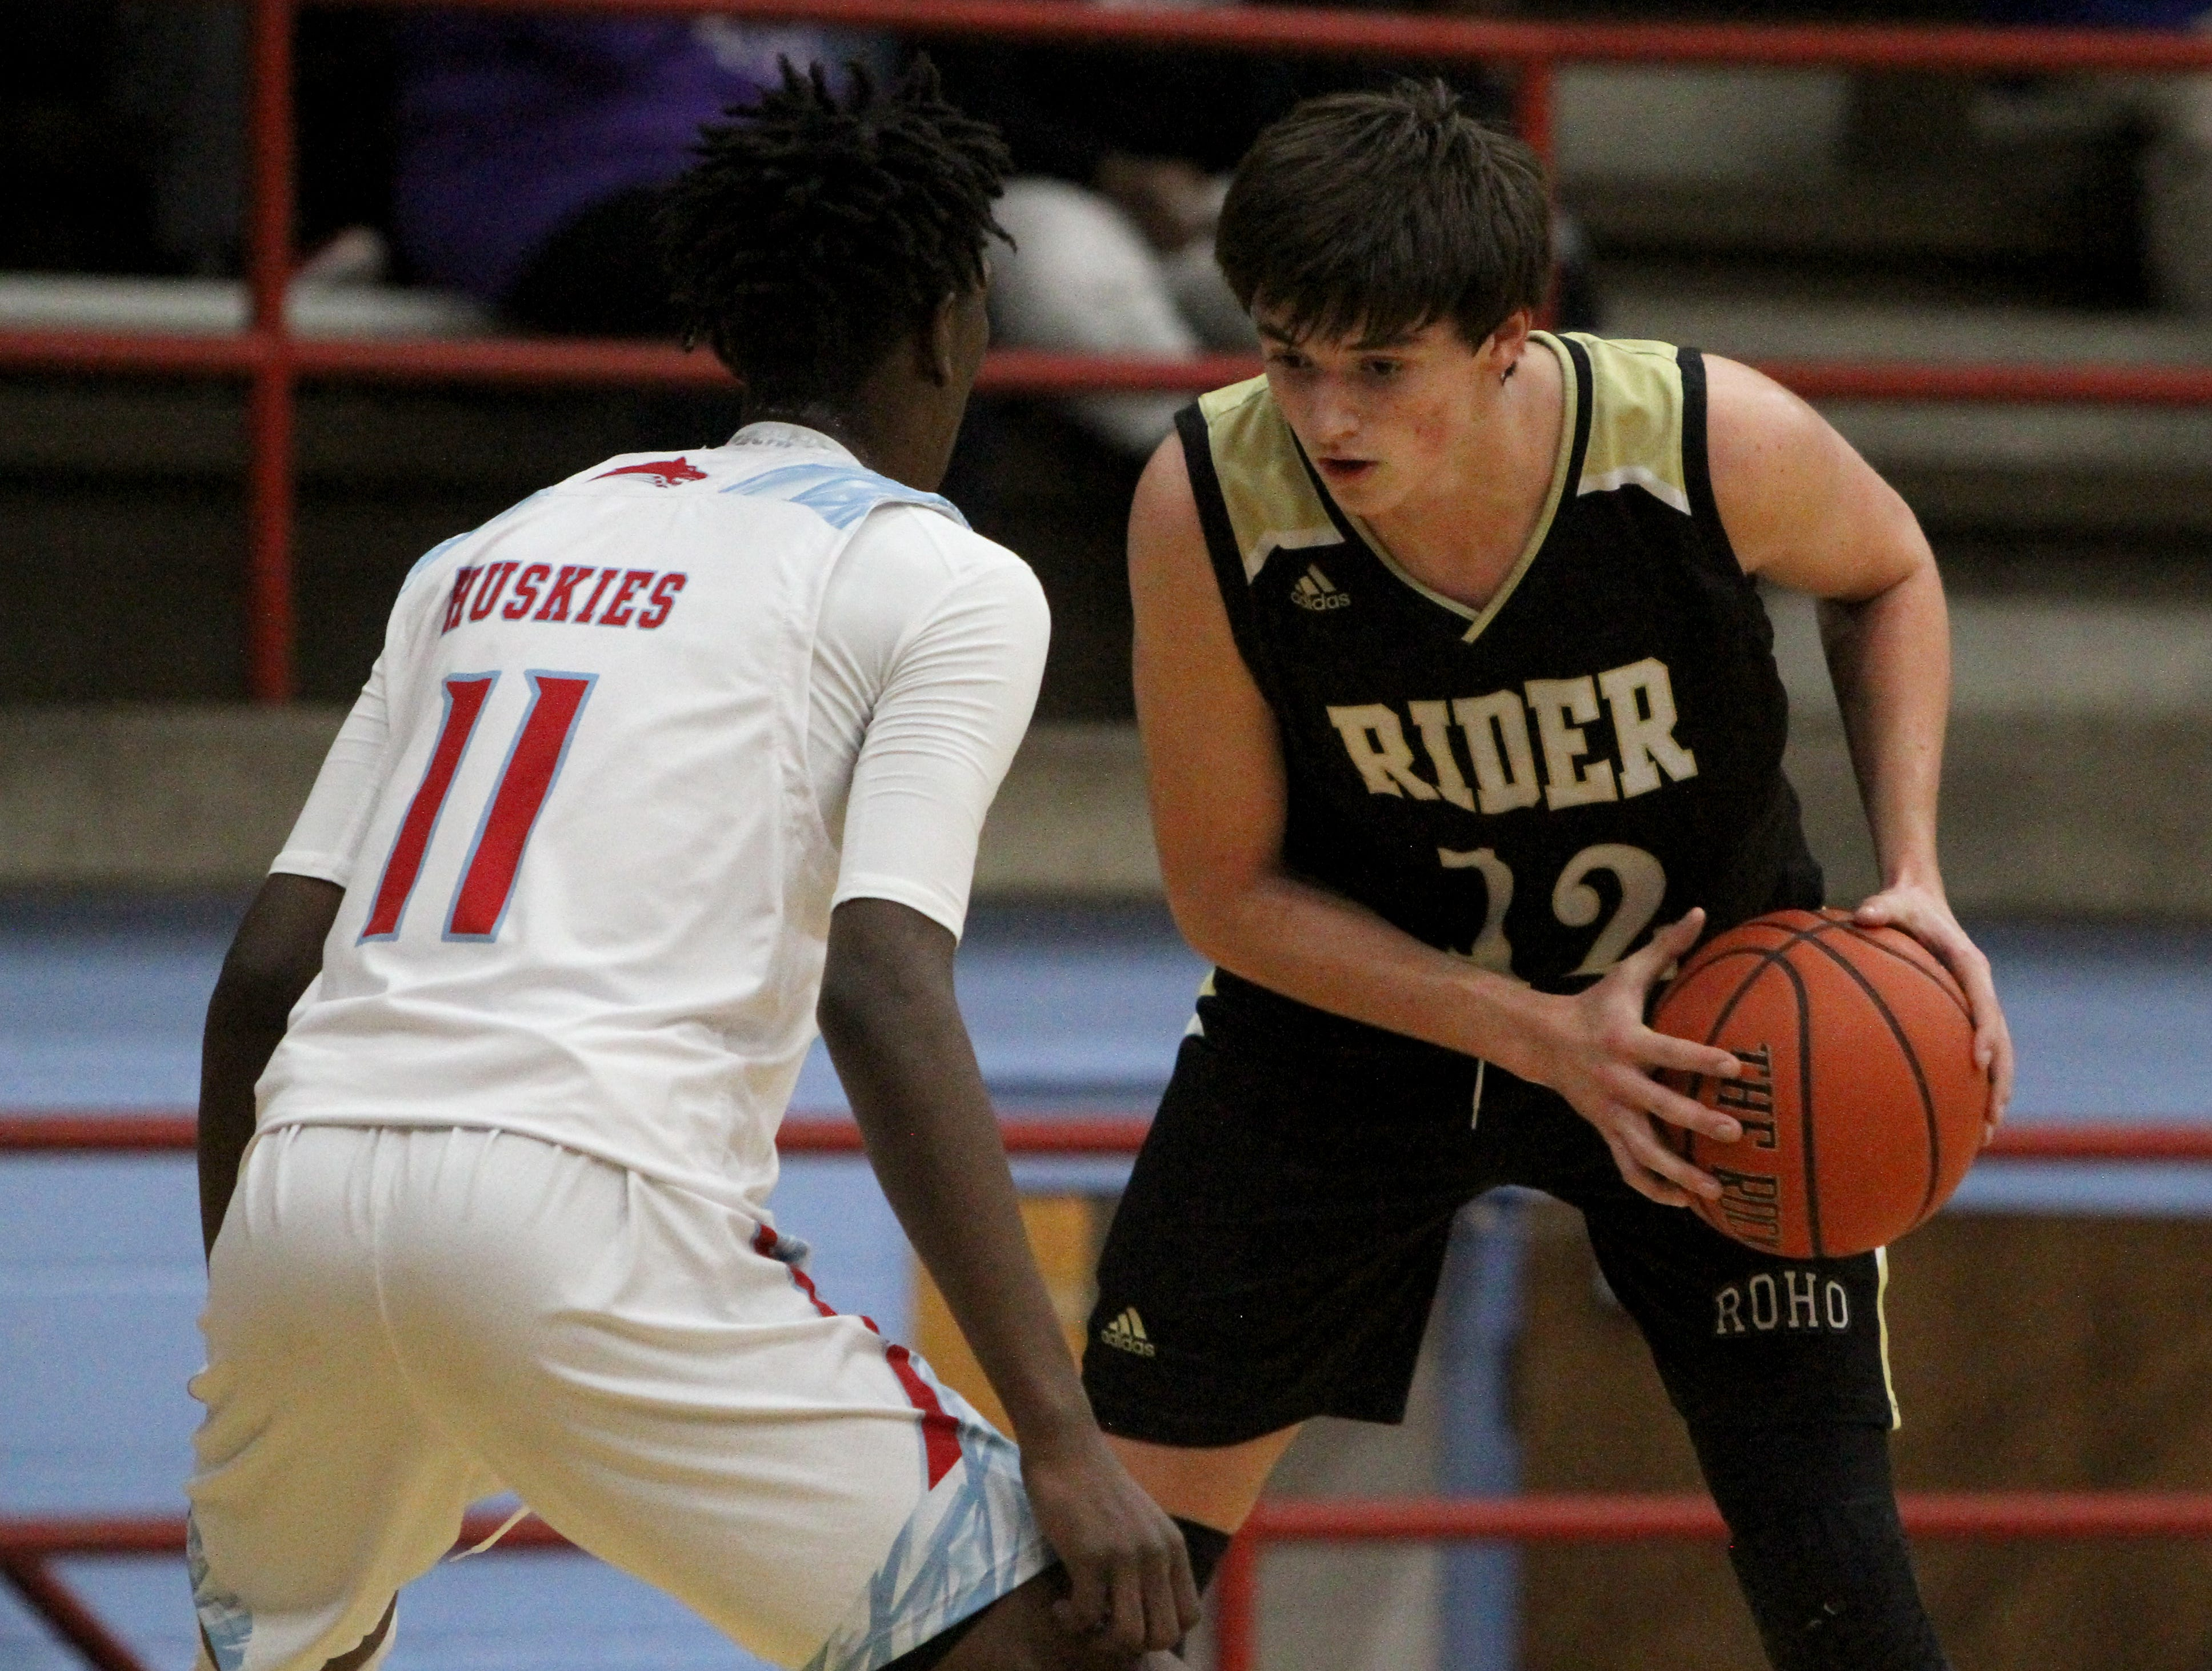 Rider's Ty Caswell is guarded by Hirschi's Qua Easter Tuesday, Dec. 11, 2018, at Hirschi. The Raiders defeated the Huskies 55-37.